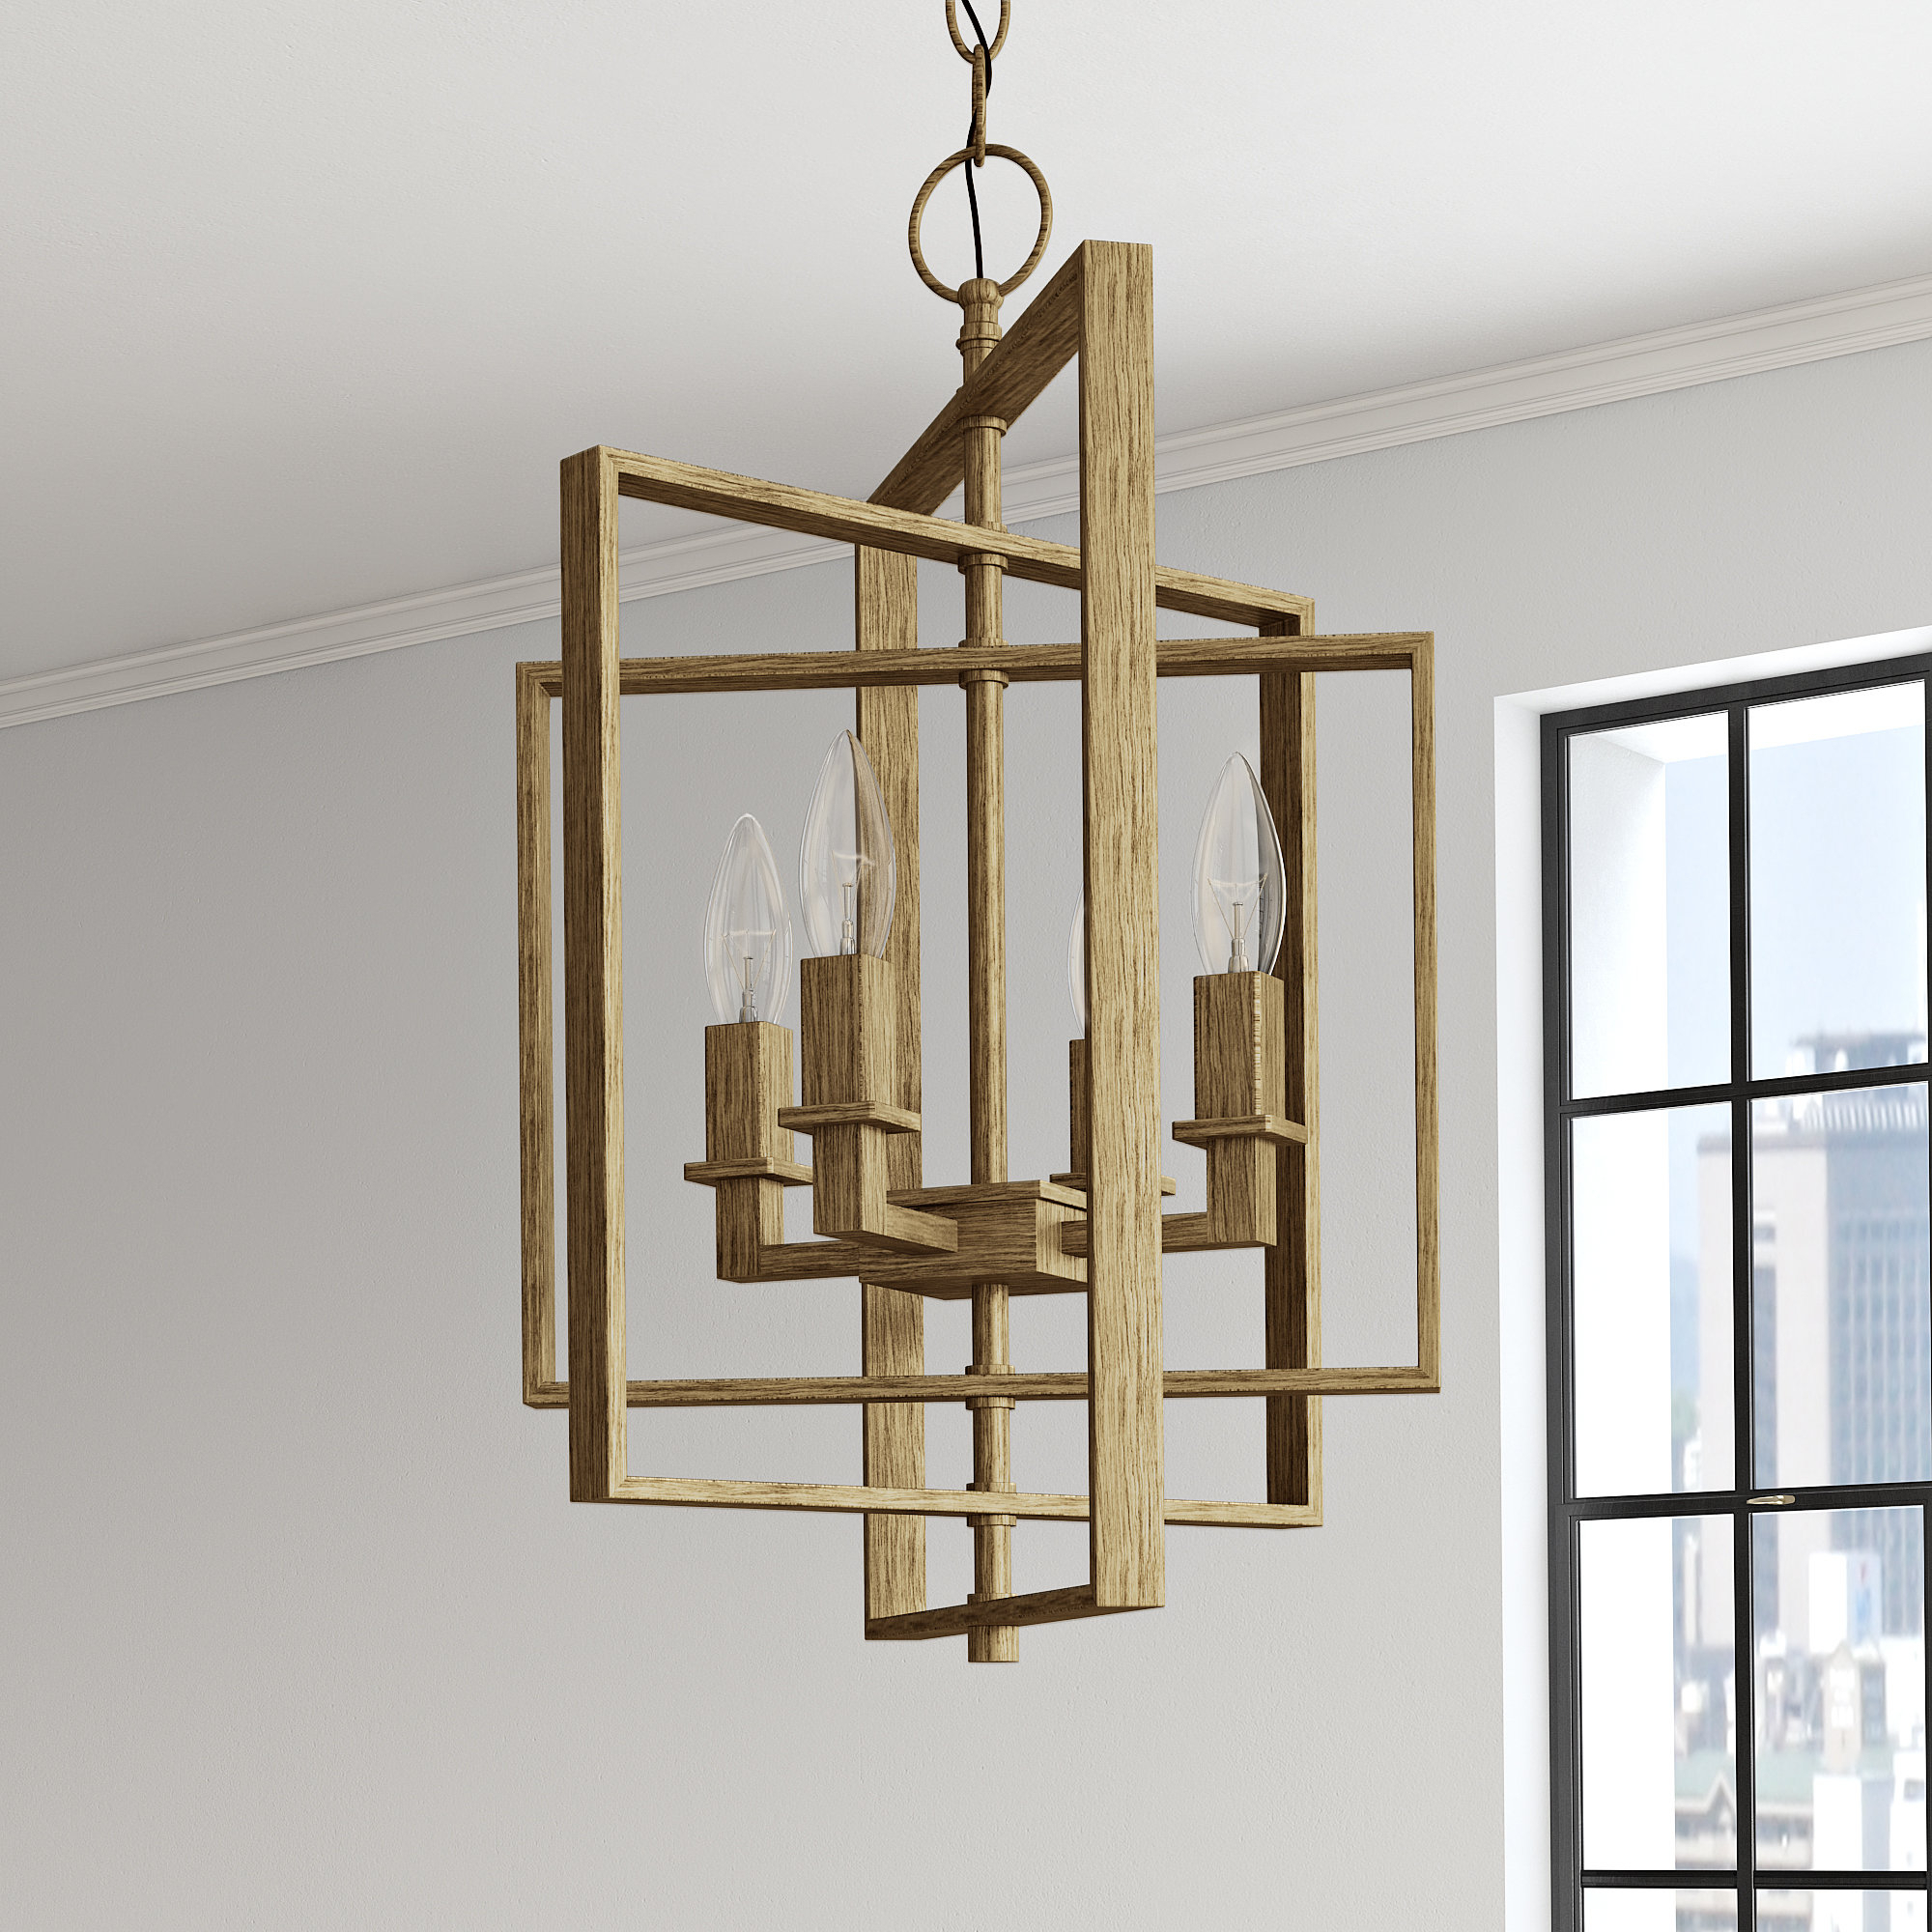 2019 Yarnell 4 Light Square/rectangle Chandelier Within Tiana 4 Light Geometric Chandeliers (Gallery 4 of 20)